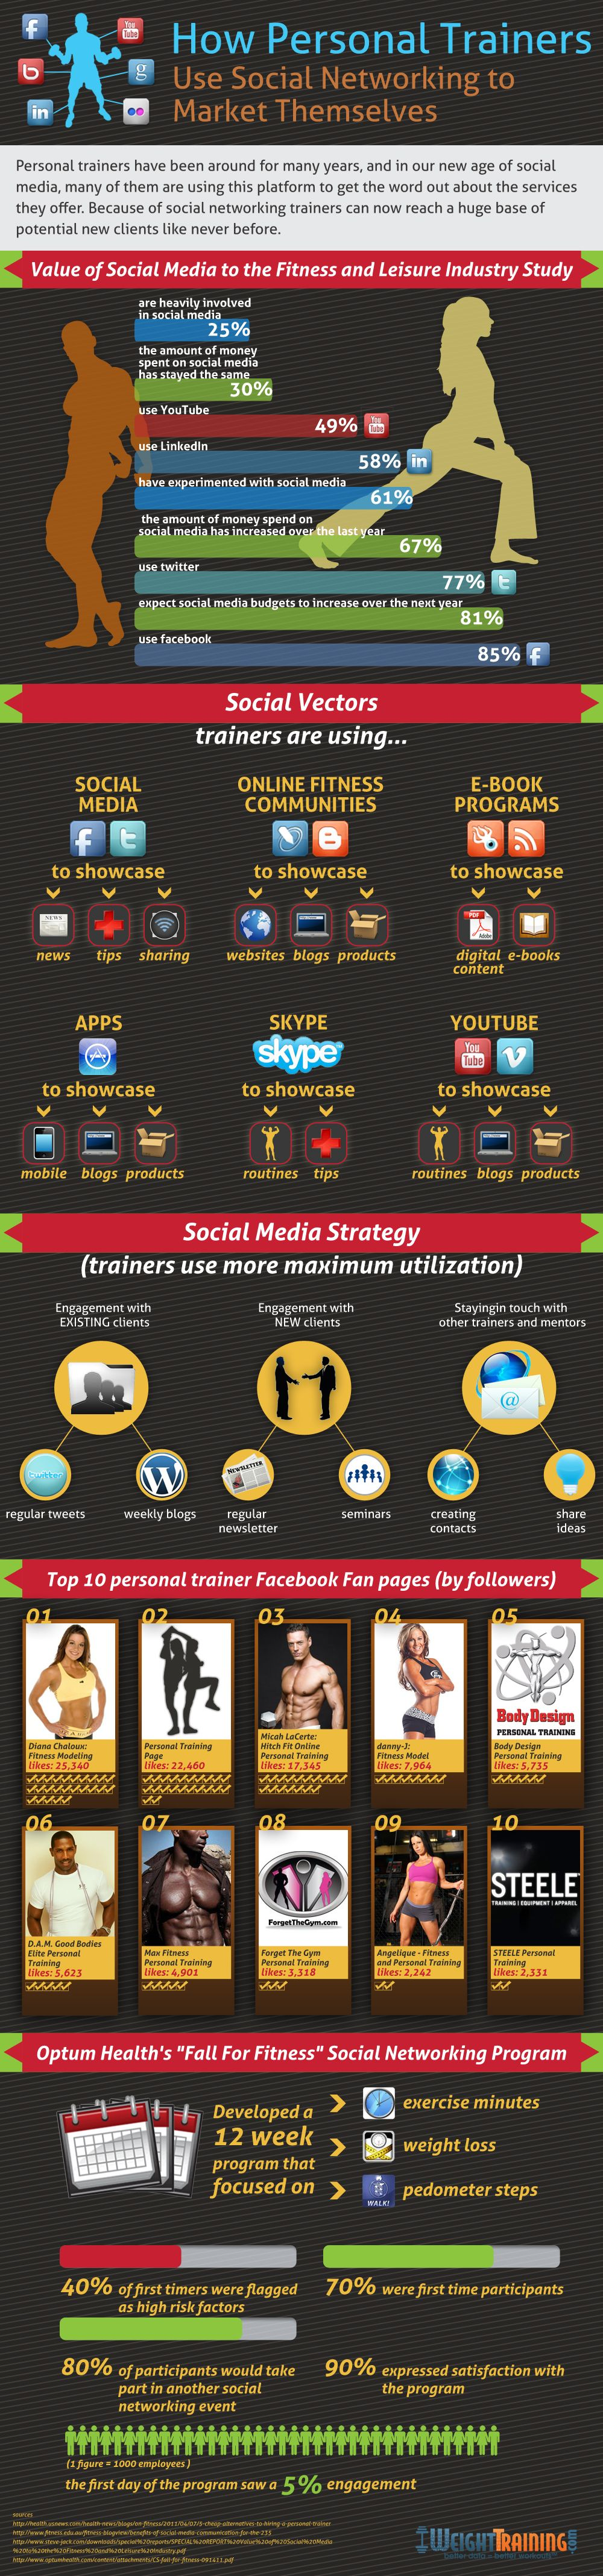 Personal Trainers and Social Media Marketing Personal